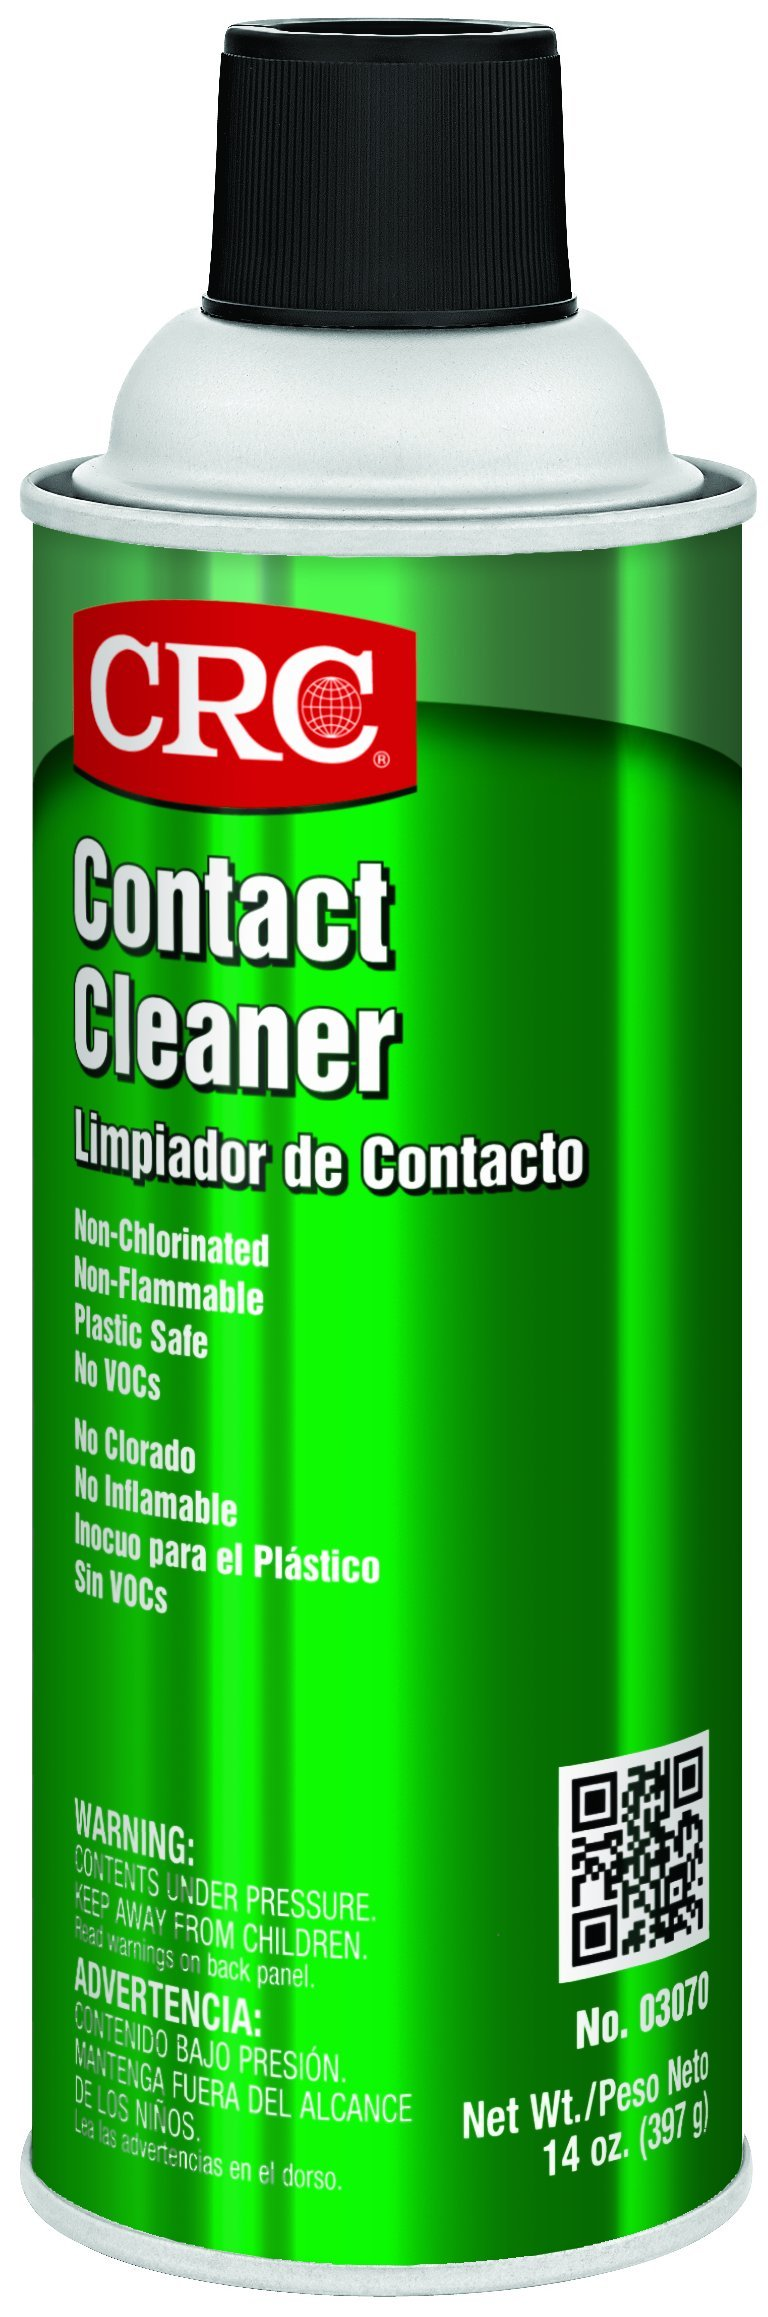 CRC Contact Cleaner, 14 oz Aerosol Can